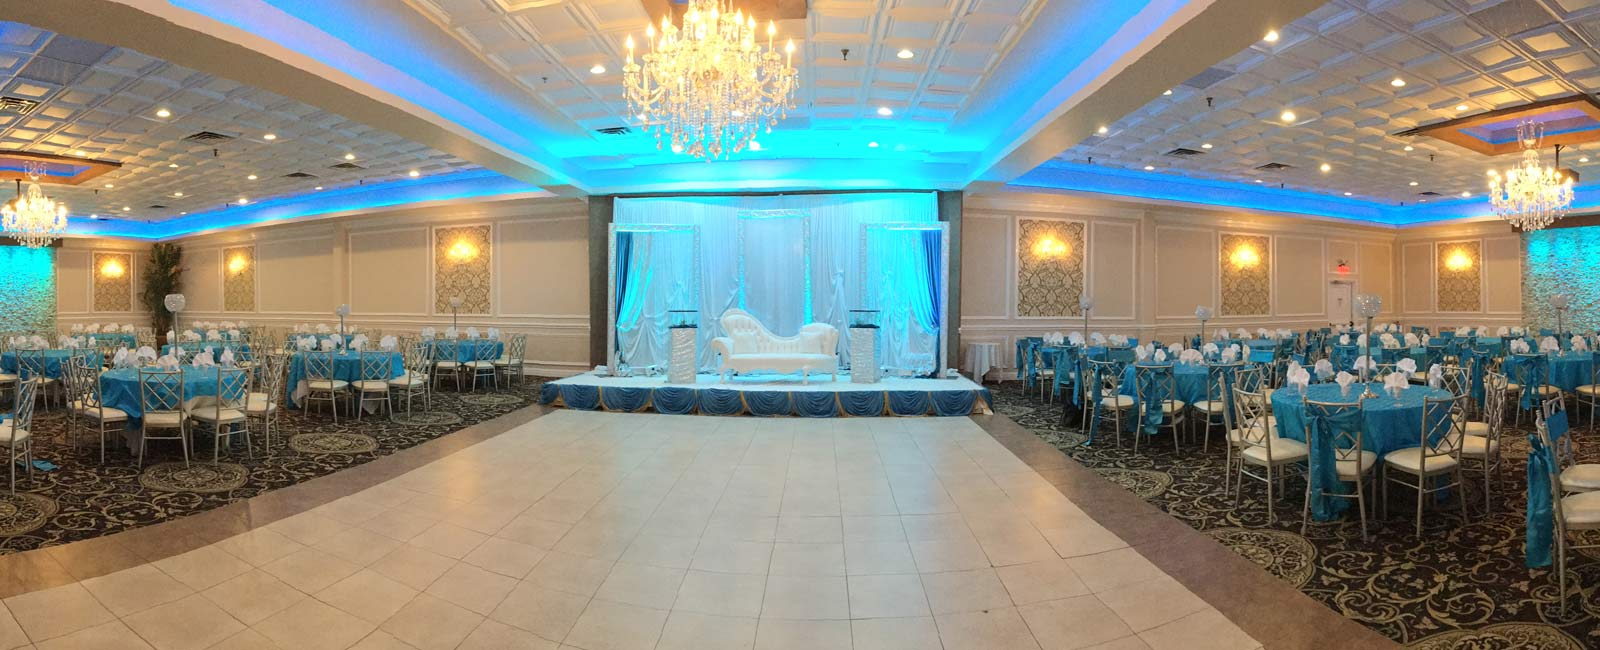 Ember Banquets Indian Restaurant Banquet Hall Catering Nj